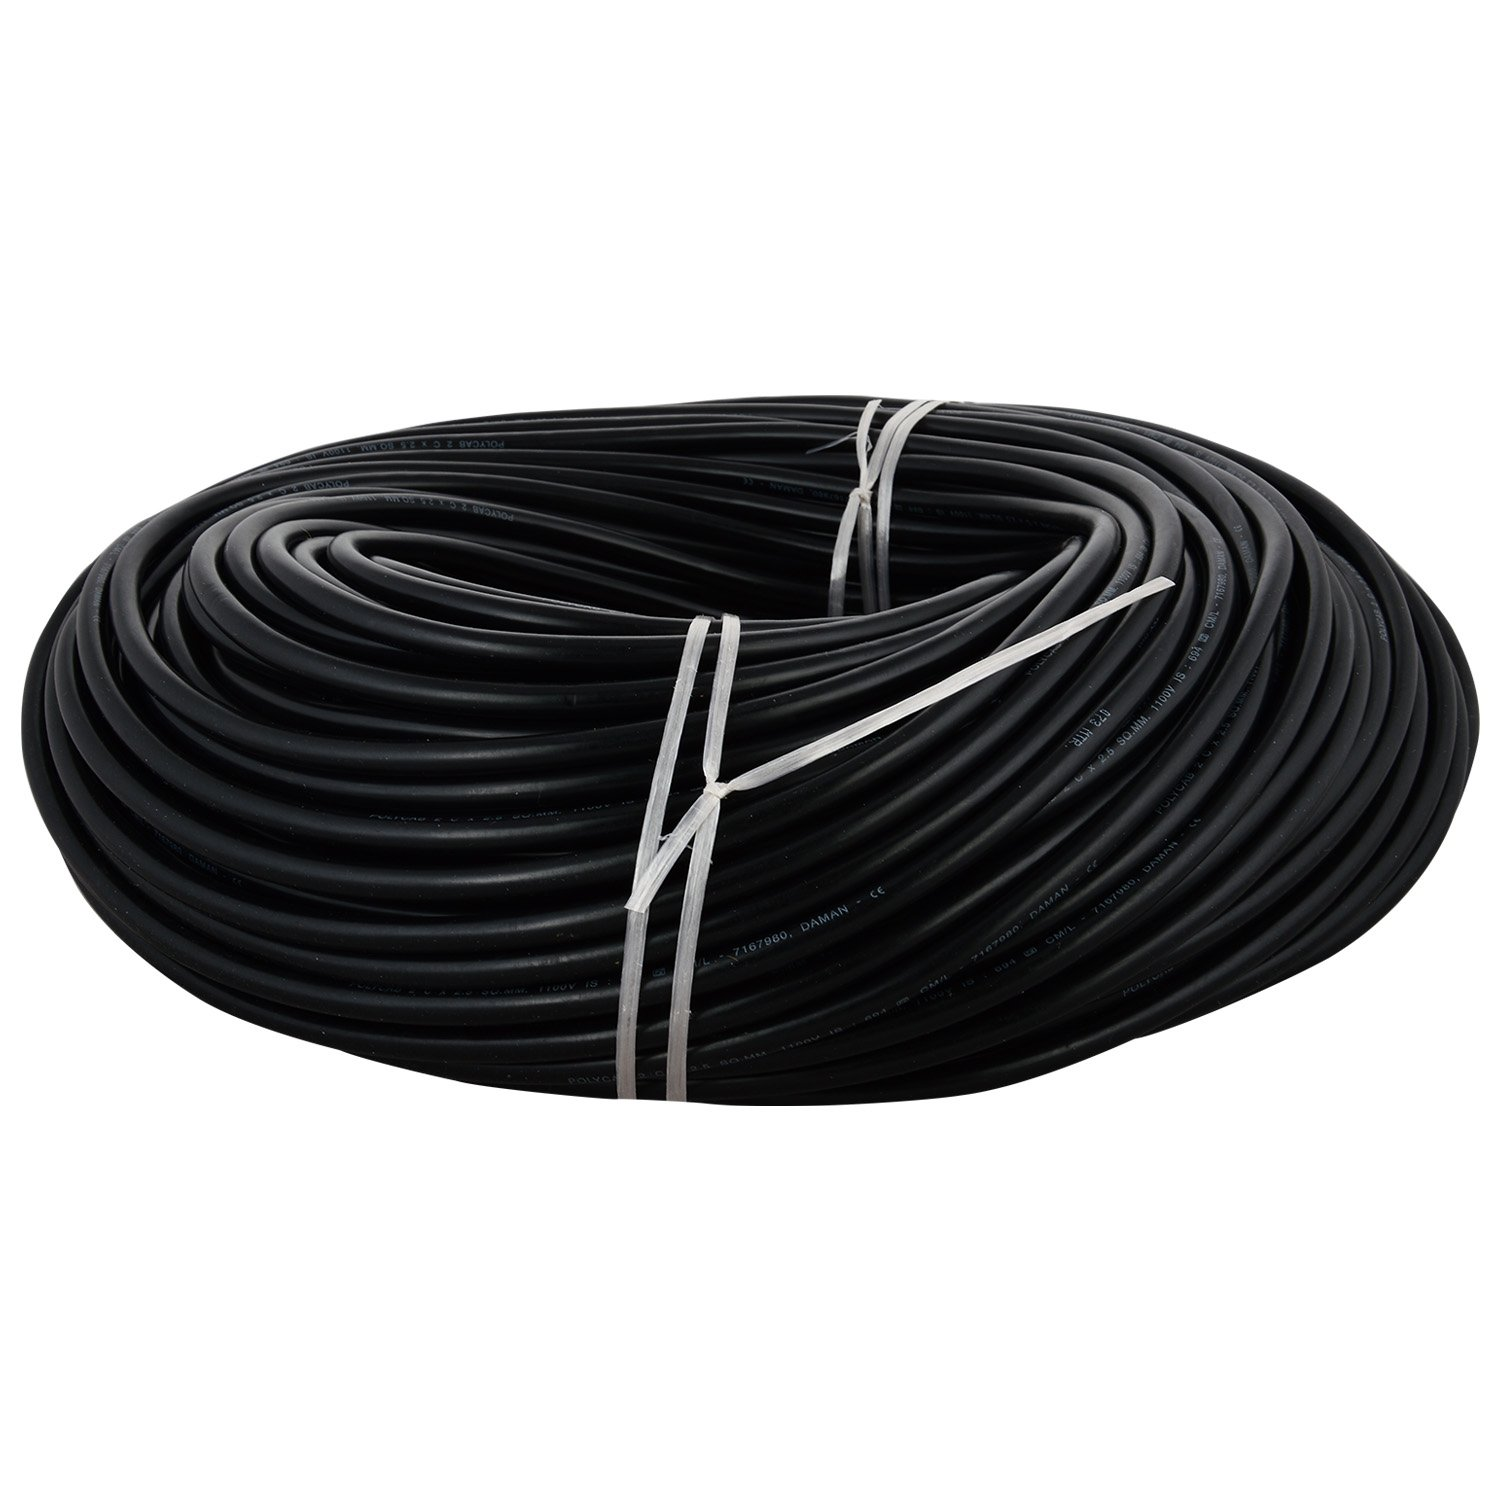 Polycab Pvc Insulated 2 Core Copper Cable 25 Sq Mm Wire Black Electrical Wirepvc Coated Electric Wire7 Stranded Home Improvement